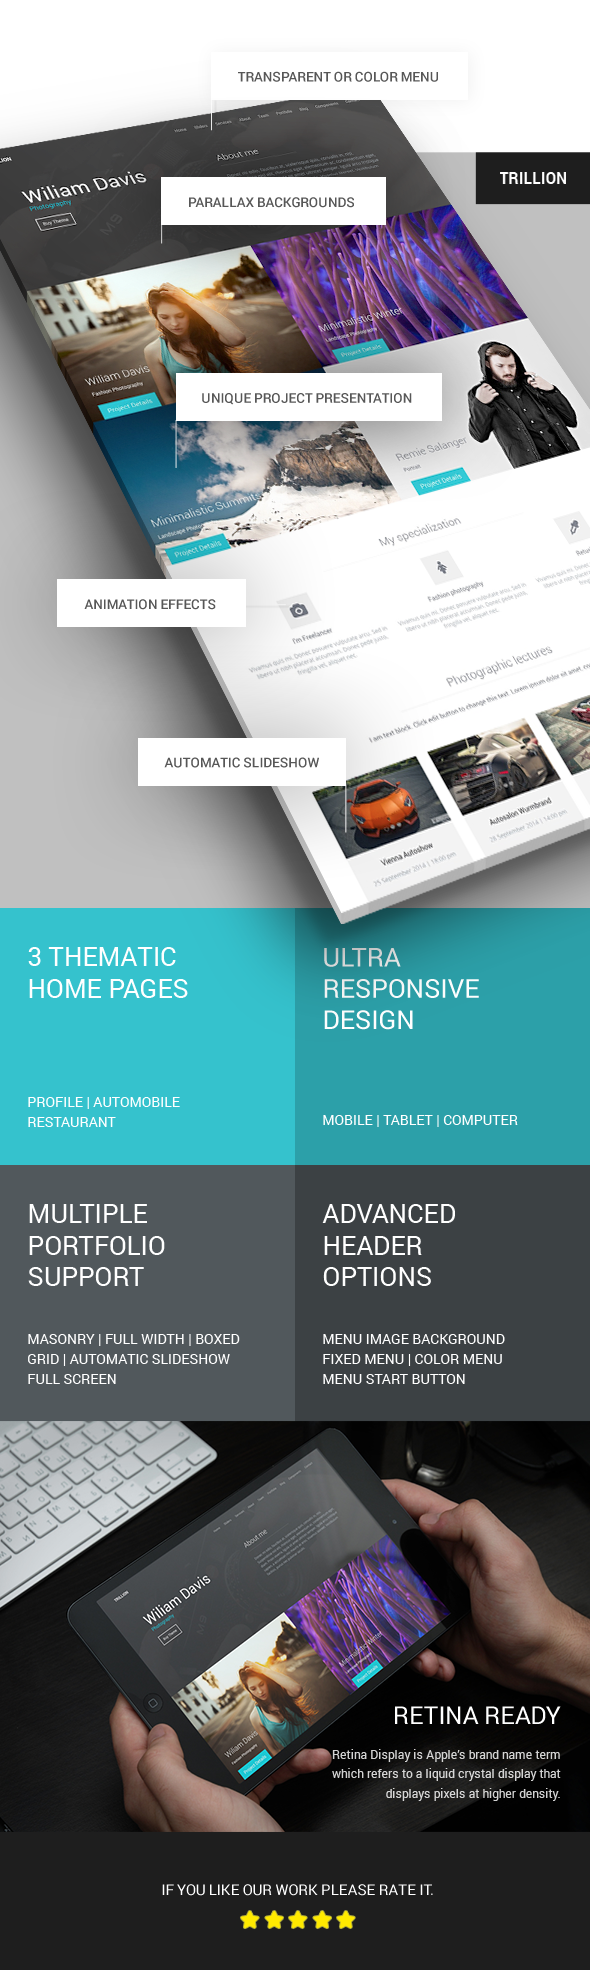 TRILLION - Premium MultiPurpose WordPress Theme